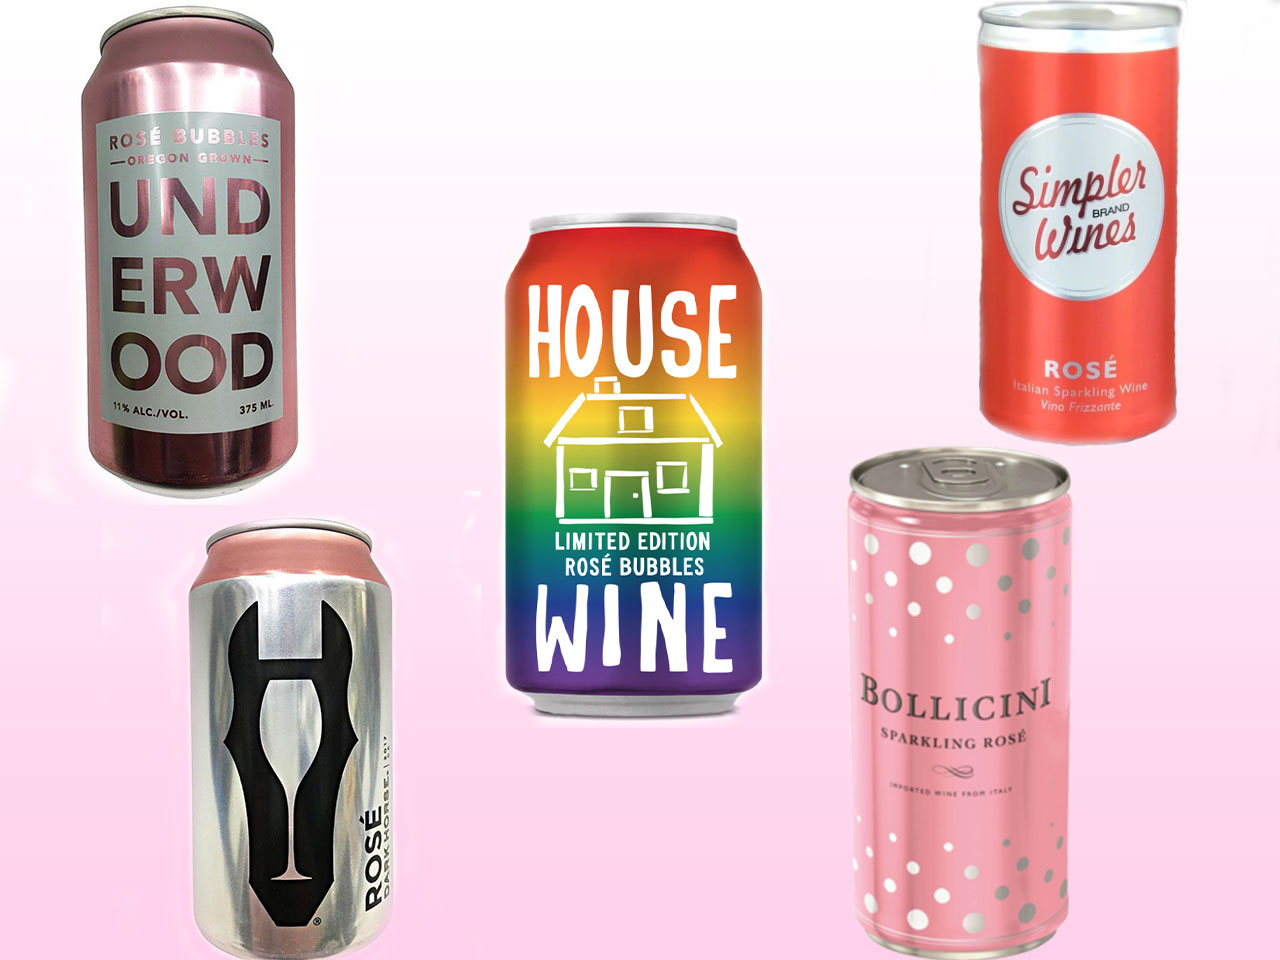 Canned Rose test taste.jpg